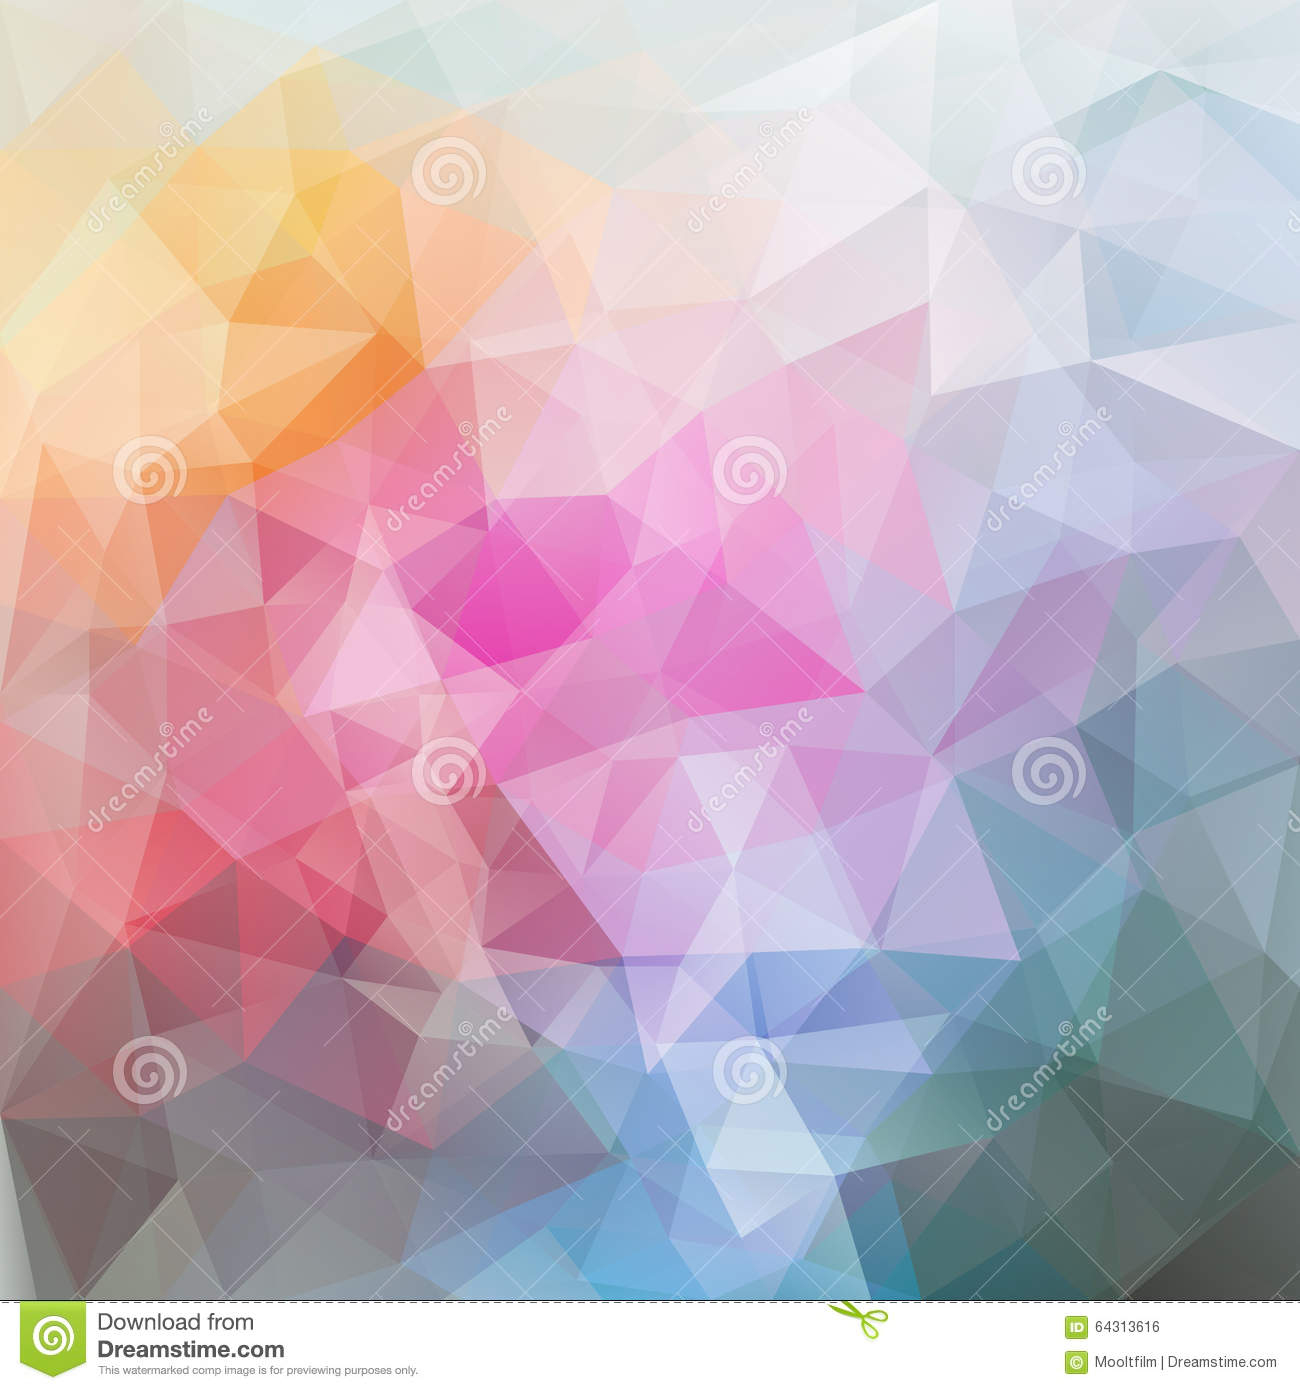 abstract polygonal colorful background - photo #13